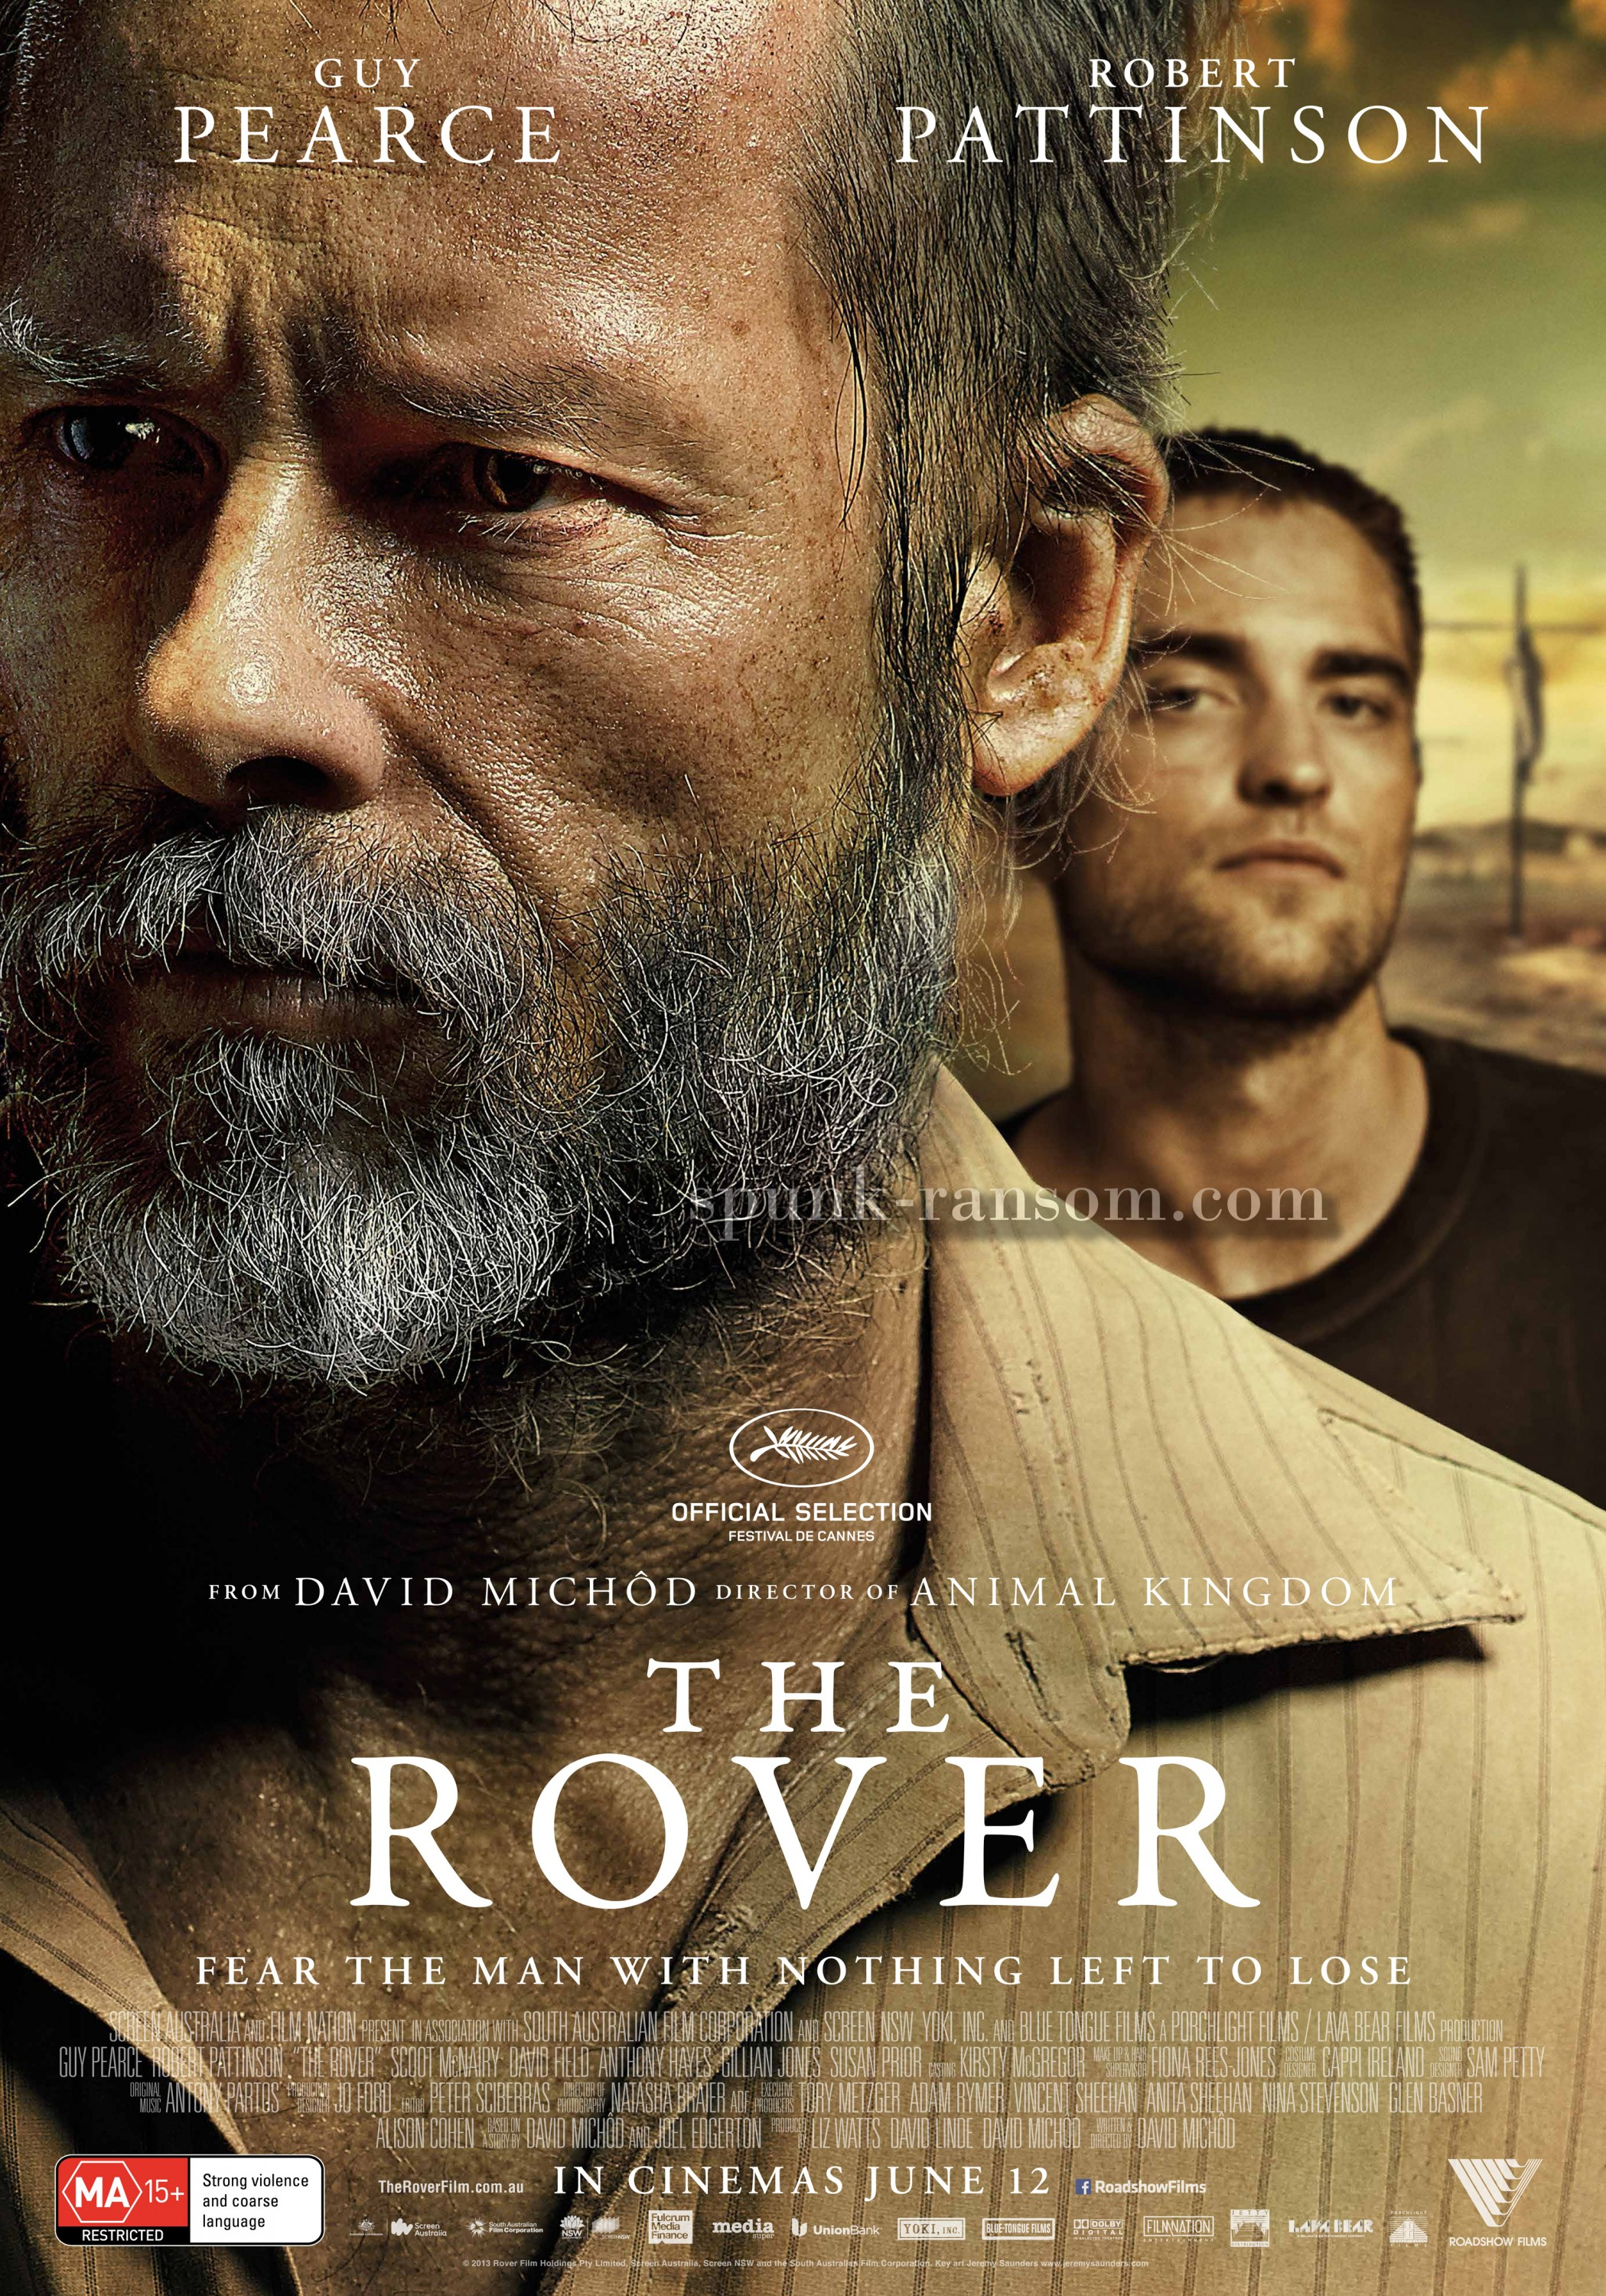 The Rover-Official Poster Banner PROMO XXLG-07MAIO2014